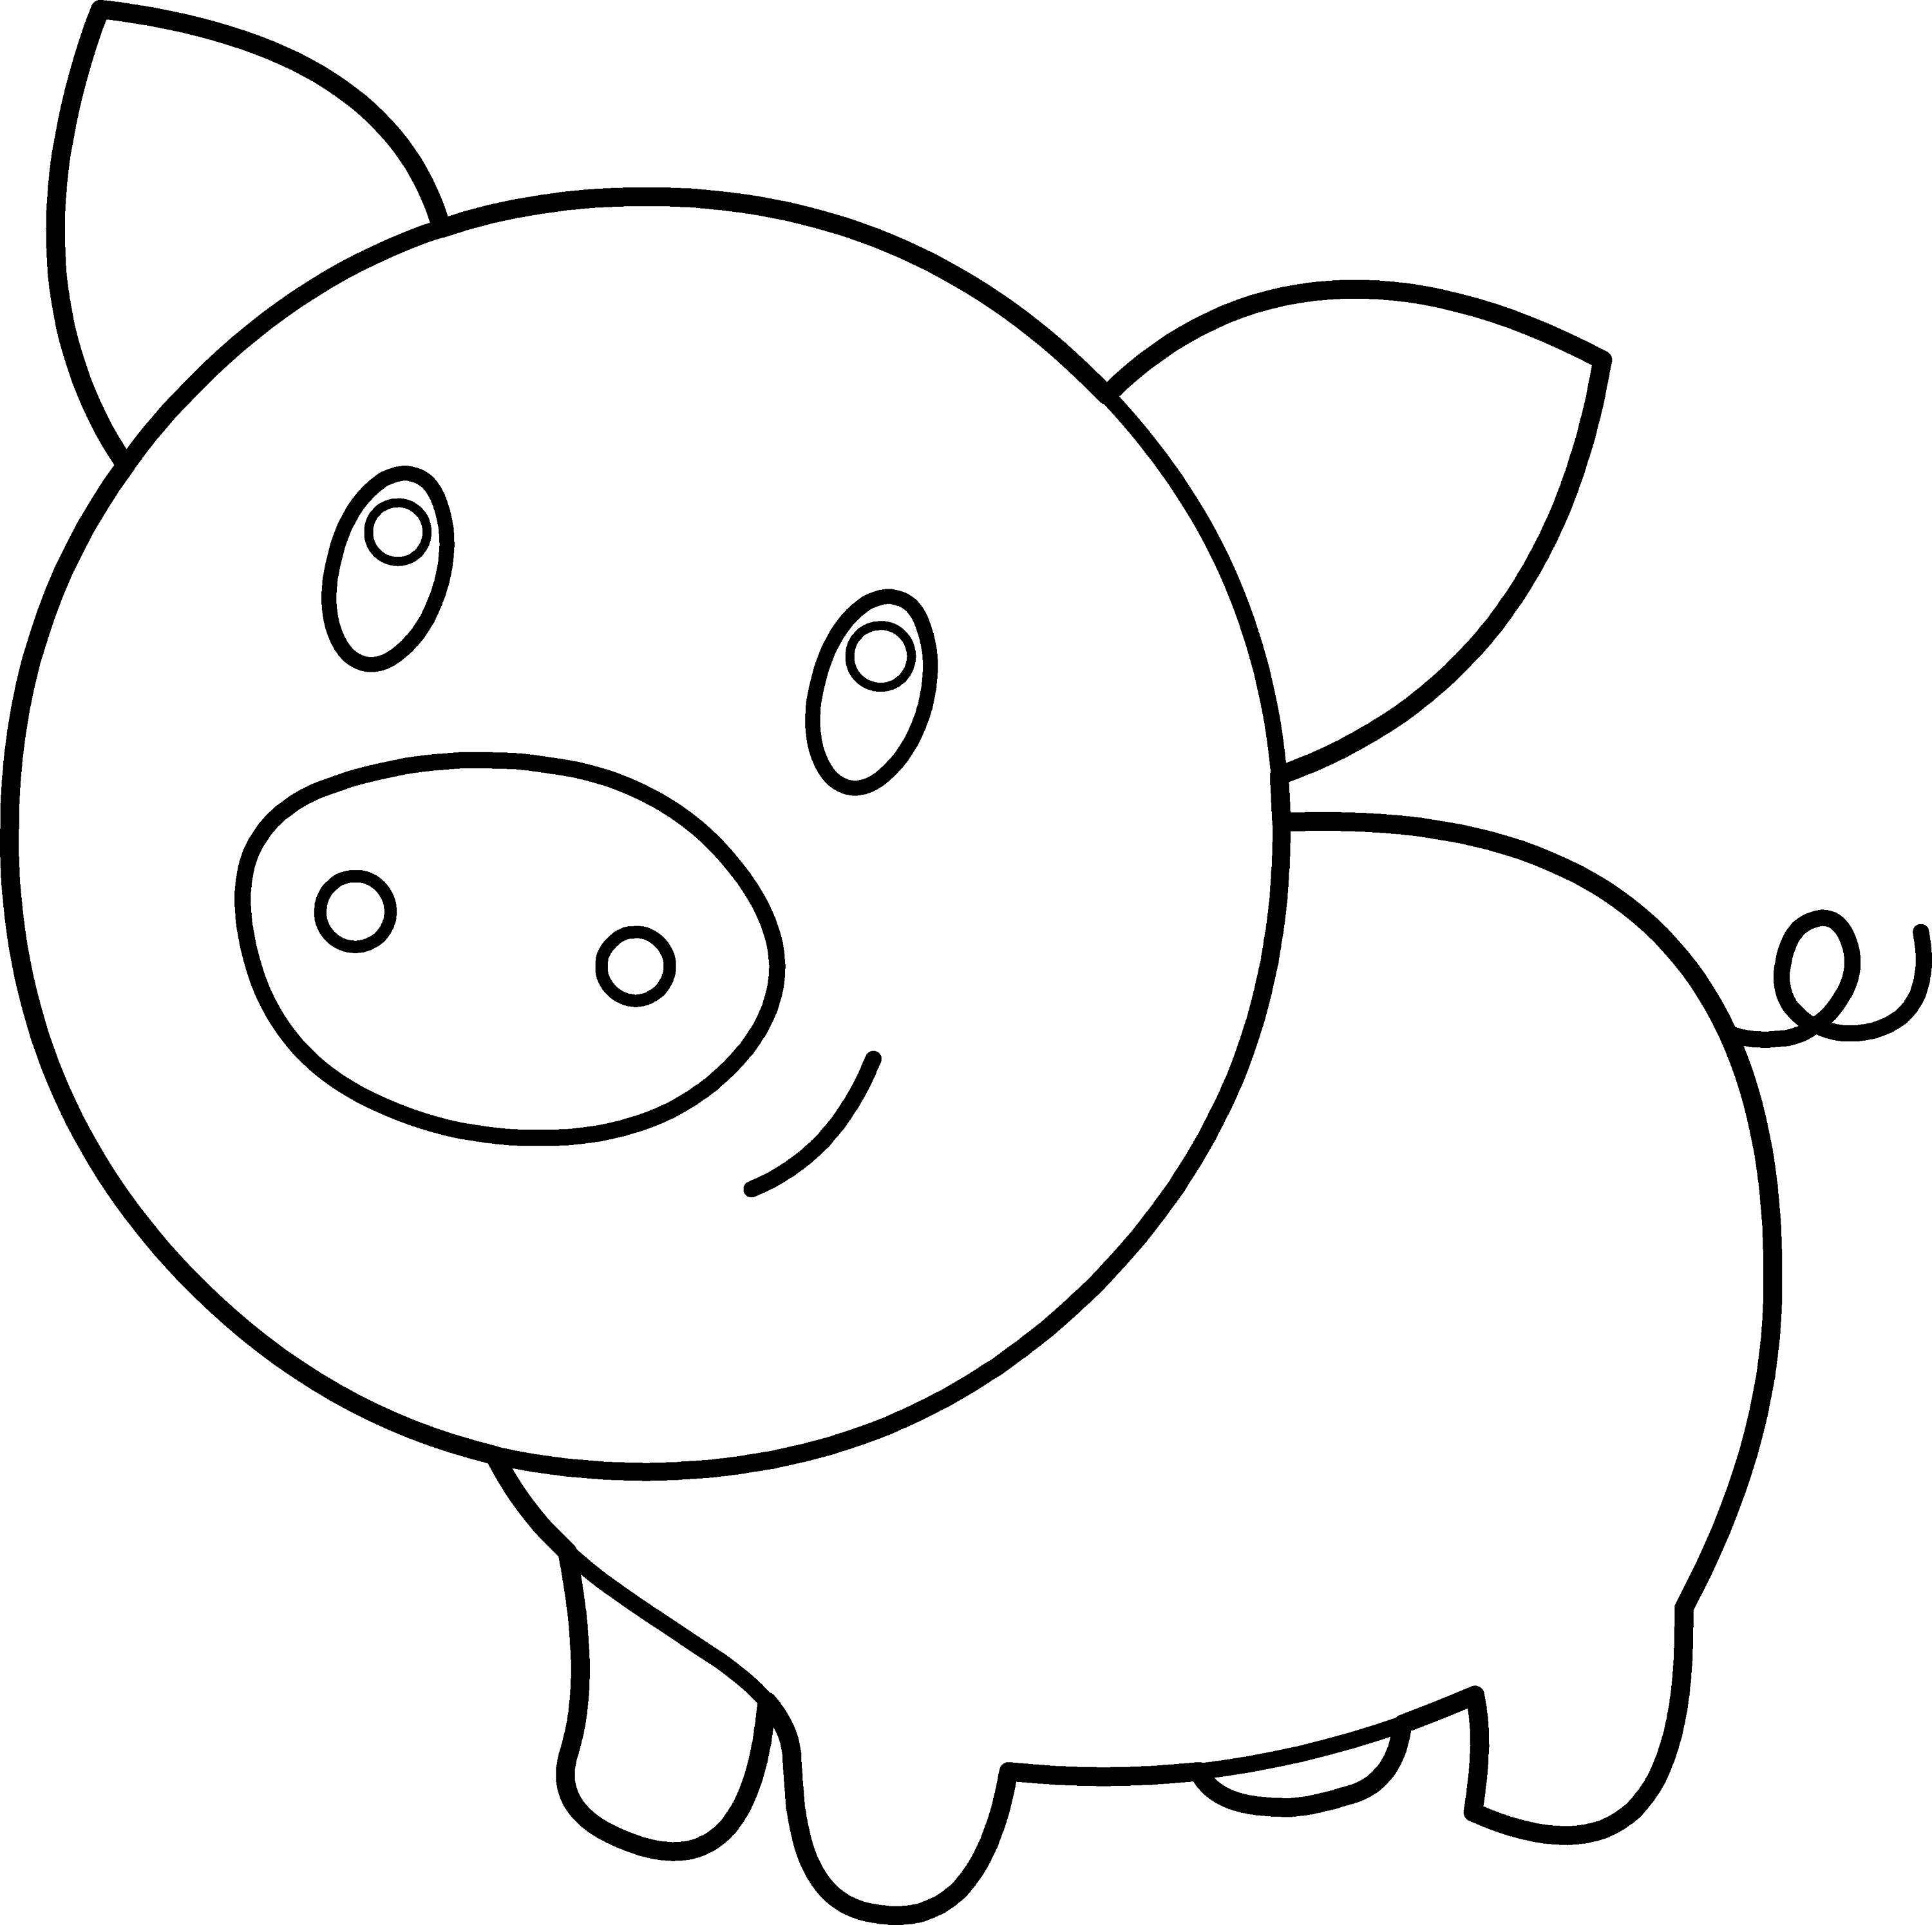 pig cartoon coloring free printable pig coloring pages for kids pig coloring cartoon